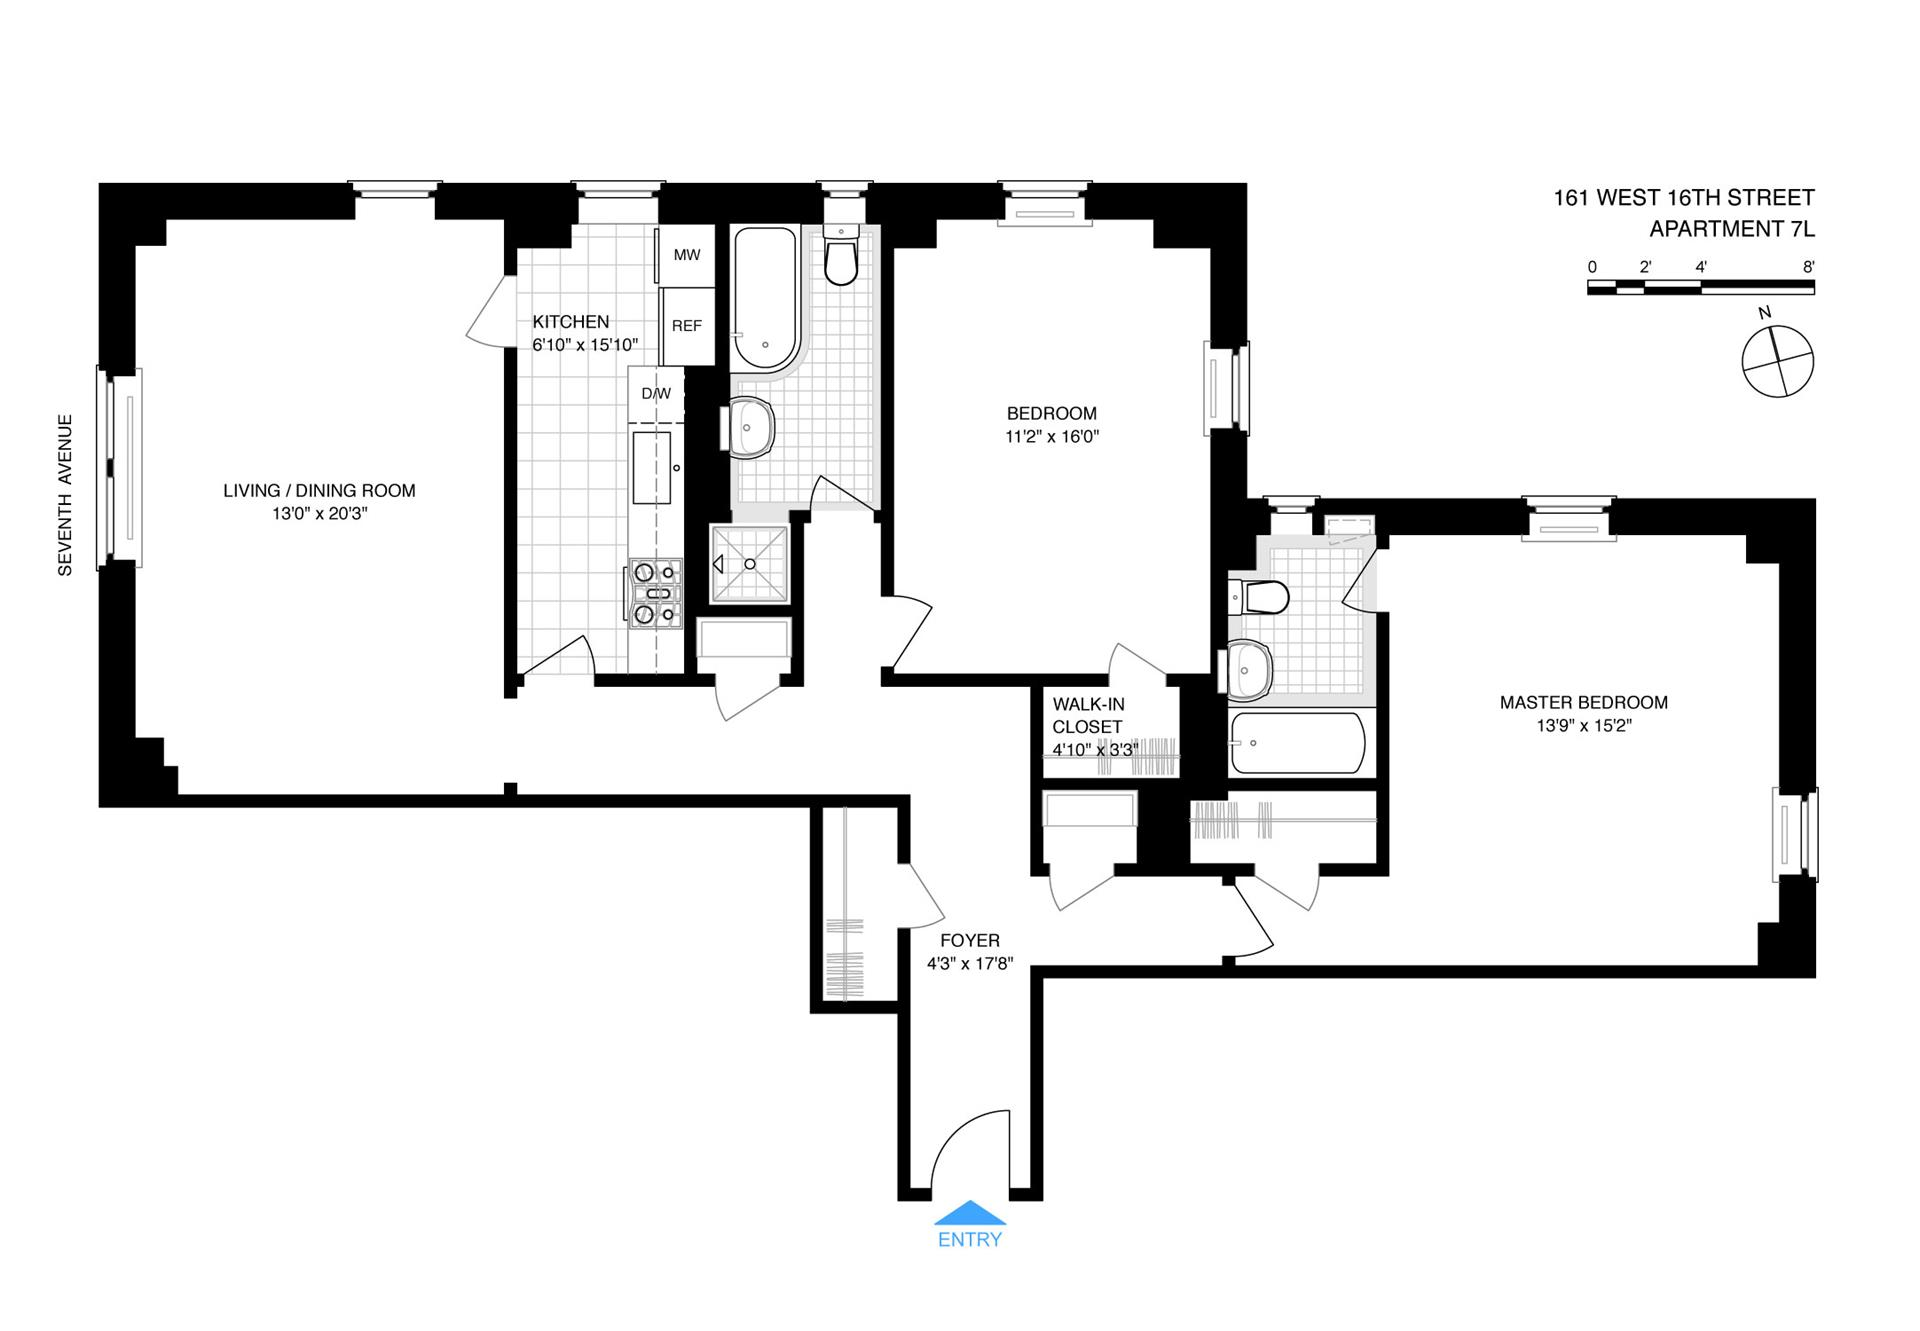 Floor plan of 161 West 16th St, 7L - Chelsea, New York